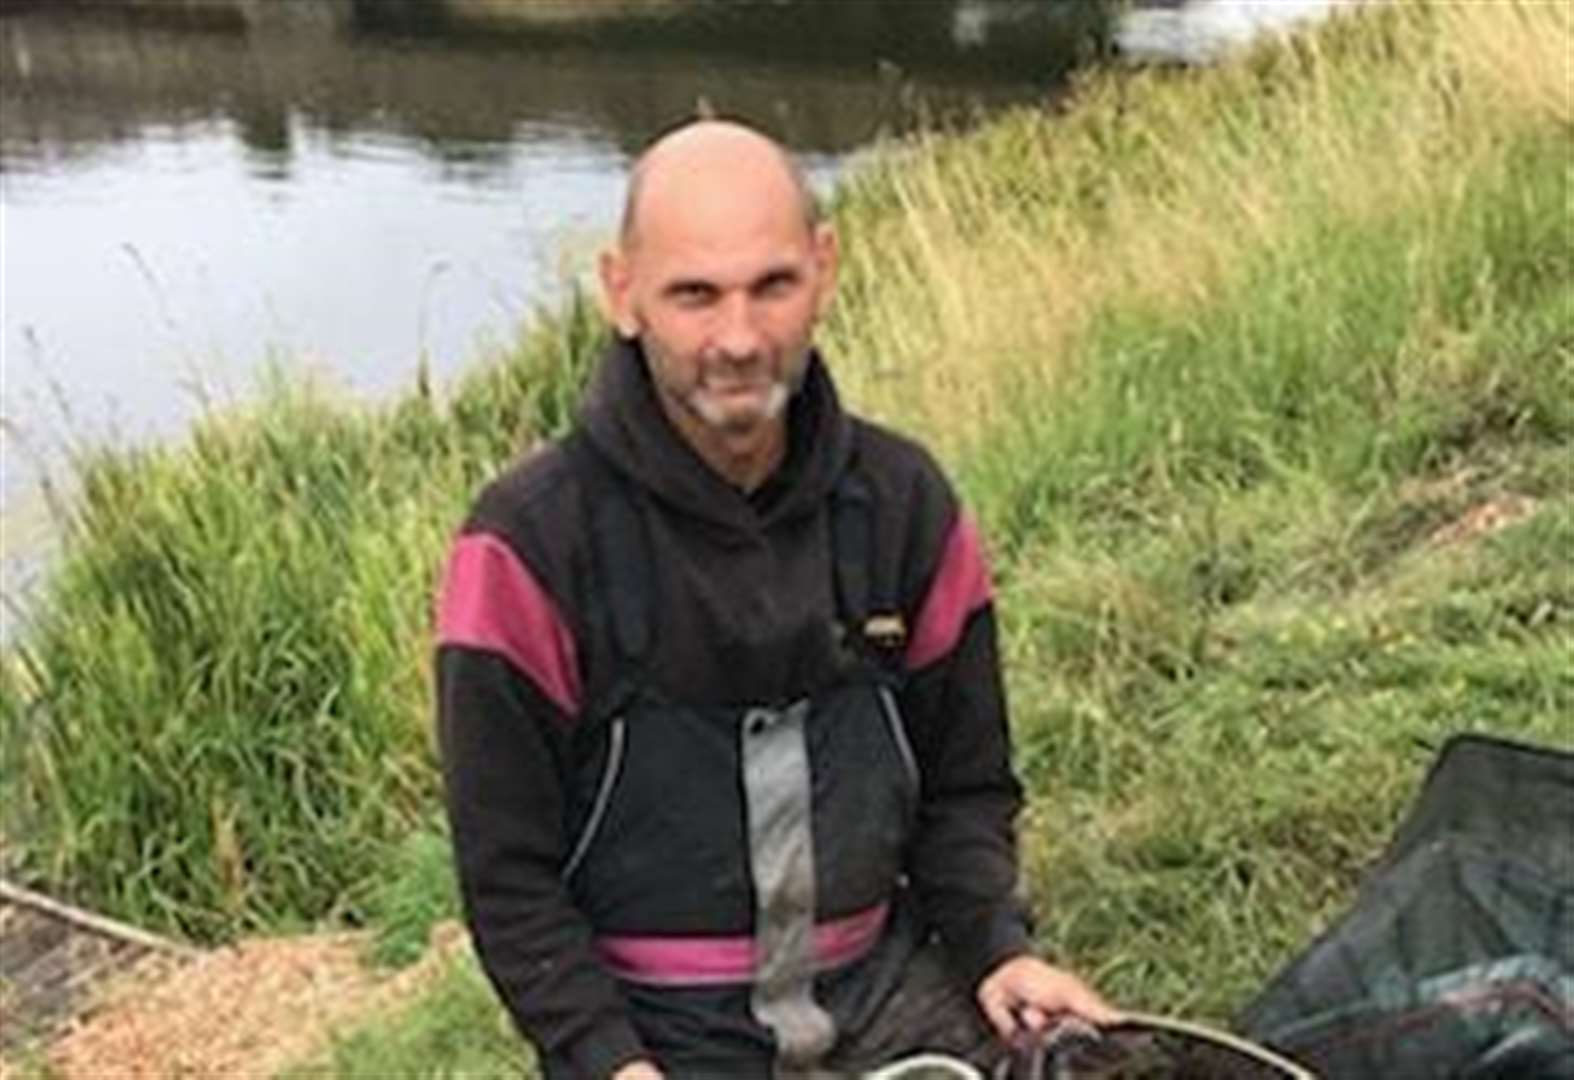 Angling: Tydd league runner-up battle hots up with Pete Emery on 100 points, Dave Simmonds 98, Steve Borrett 83 and Archie Greenwood 78